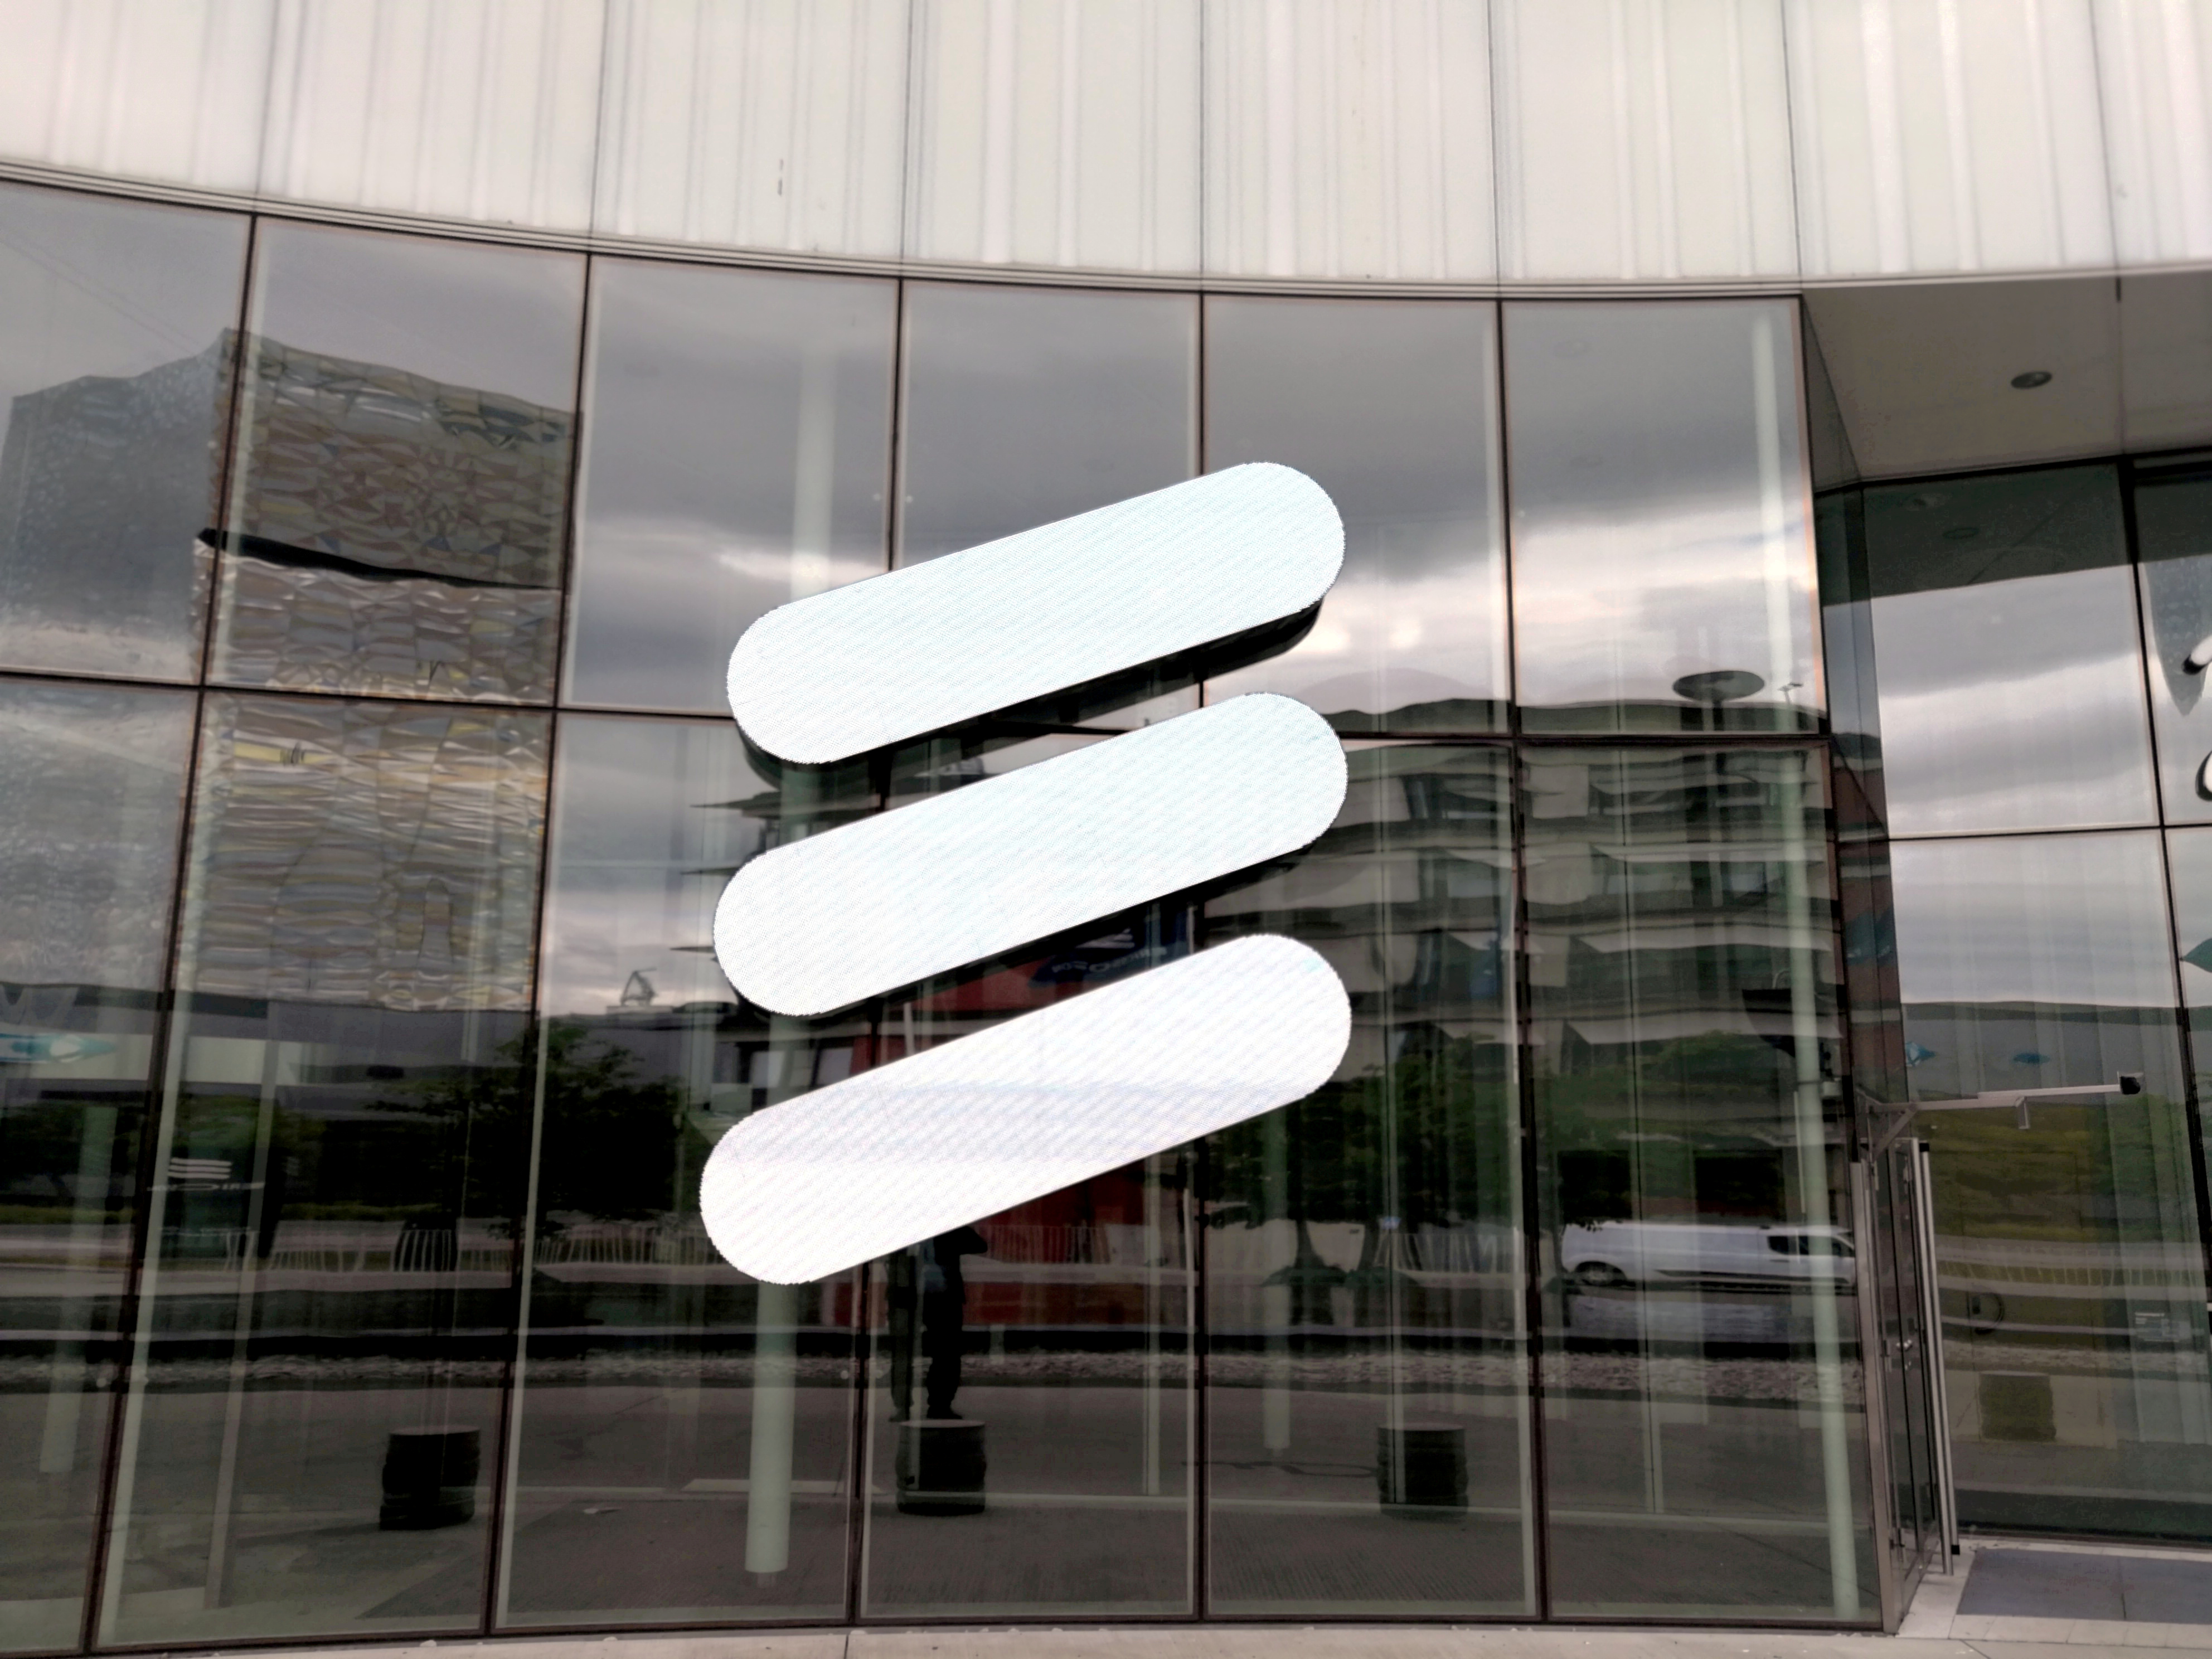 Ericsson logo is seen at its headquarters in Stockholm, Sweden June 14, 2018. REUTERS/Olof Swahnberg/File Photo